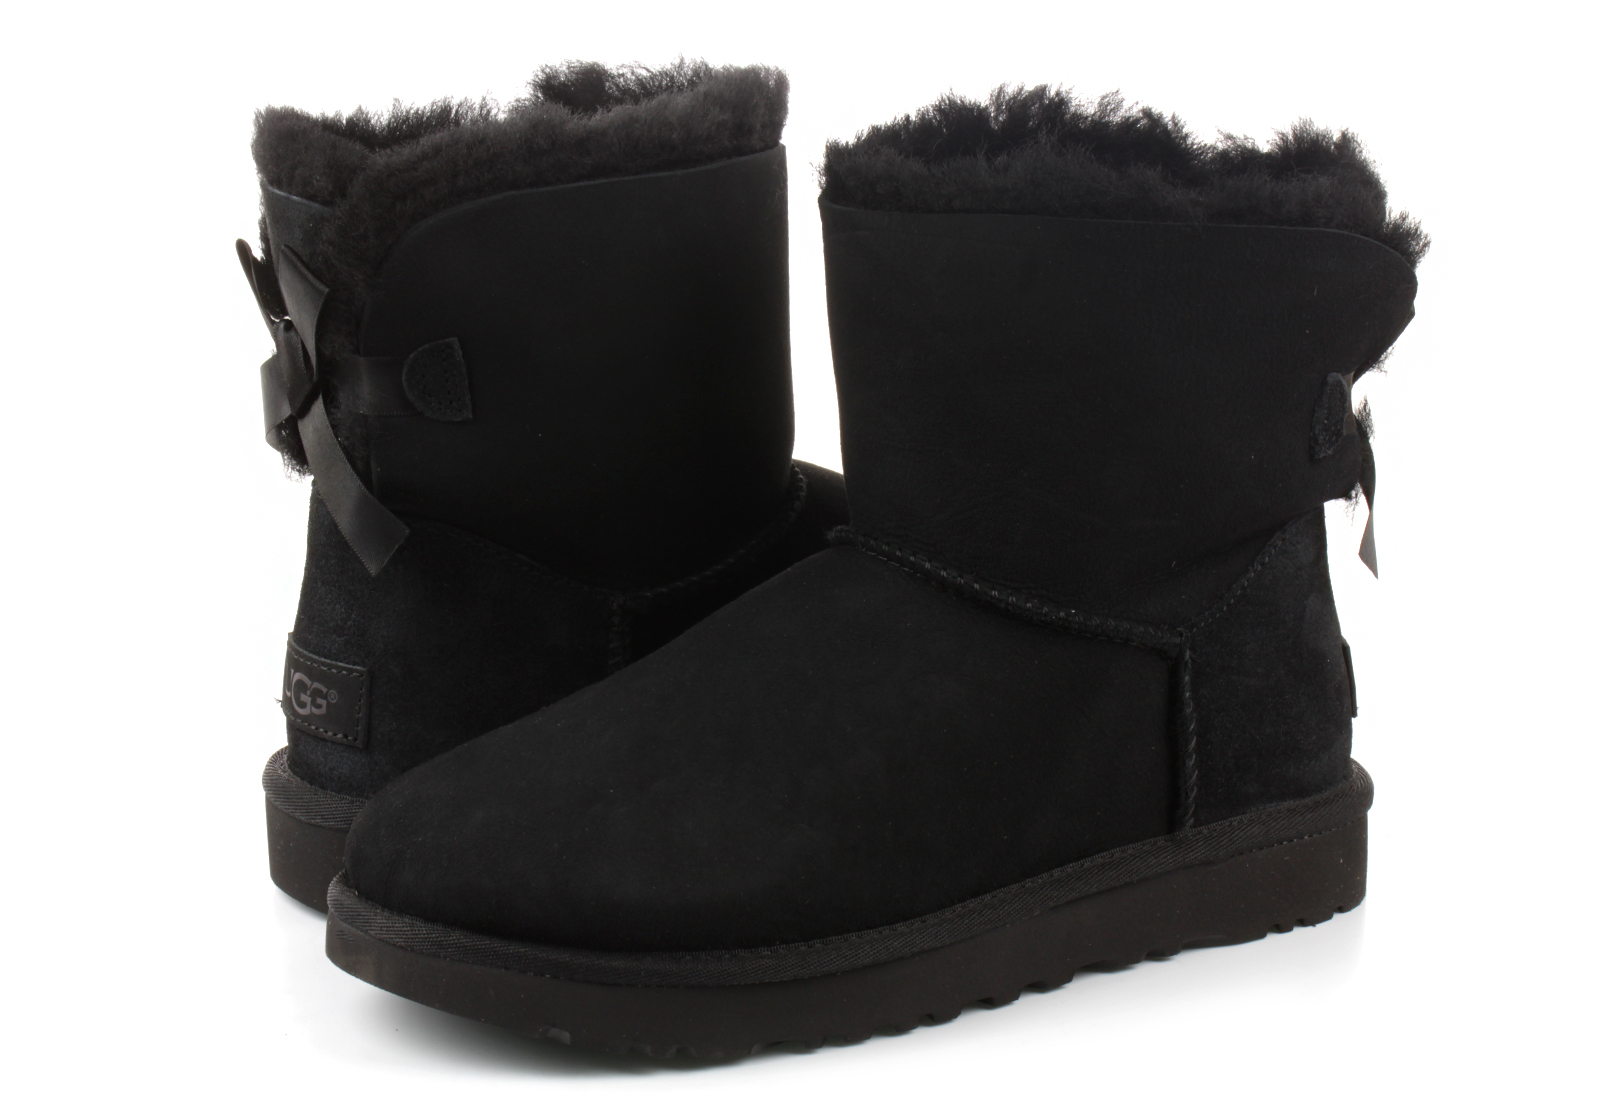 29f3c98c3 Ugg Boots - Mini Bailey Bow Ii - 1016501-BLK - Online shop for ...